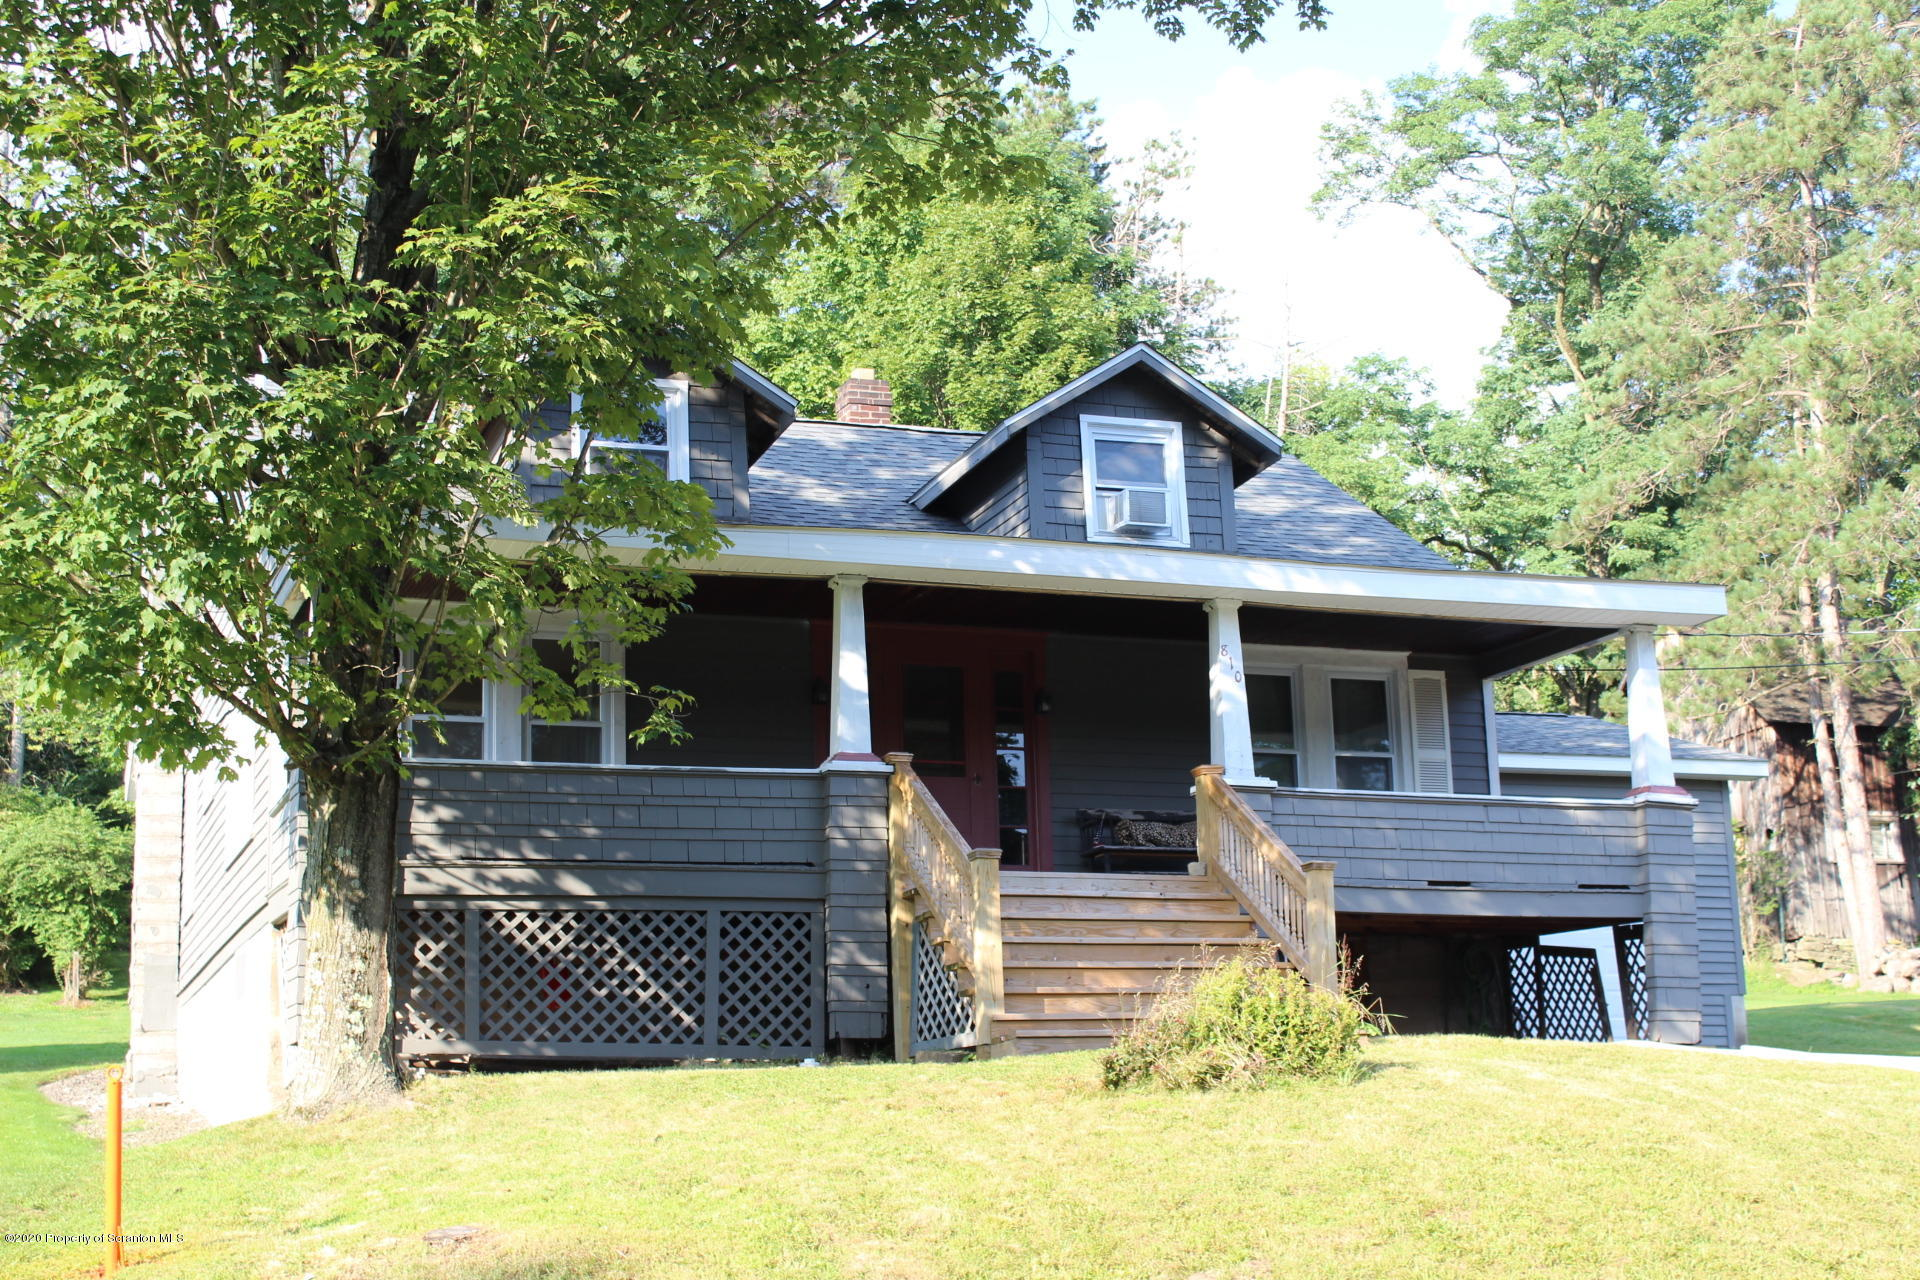 810 Maple Ave, Honesdale, Pennsylvania 18431, 3 Bedrooms Bedrooms, 6 Rooms Rooms,2 BathroomsBathrooms,Single Family,For Sale,Maple,20-3113